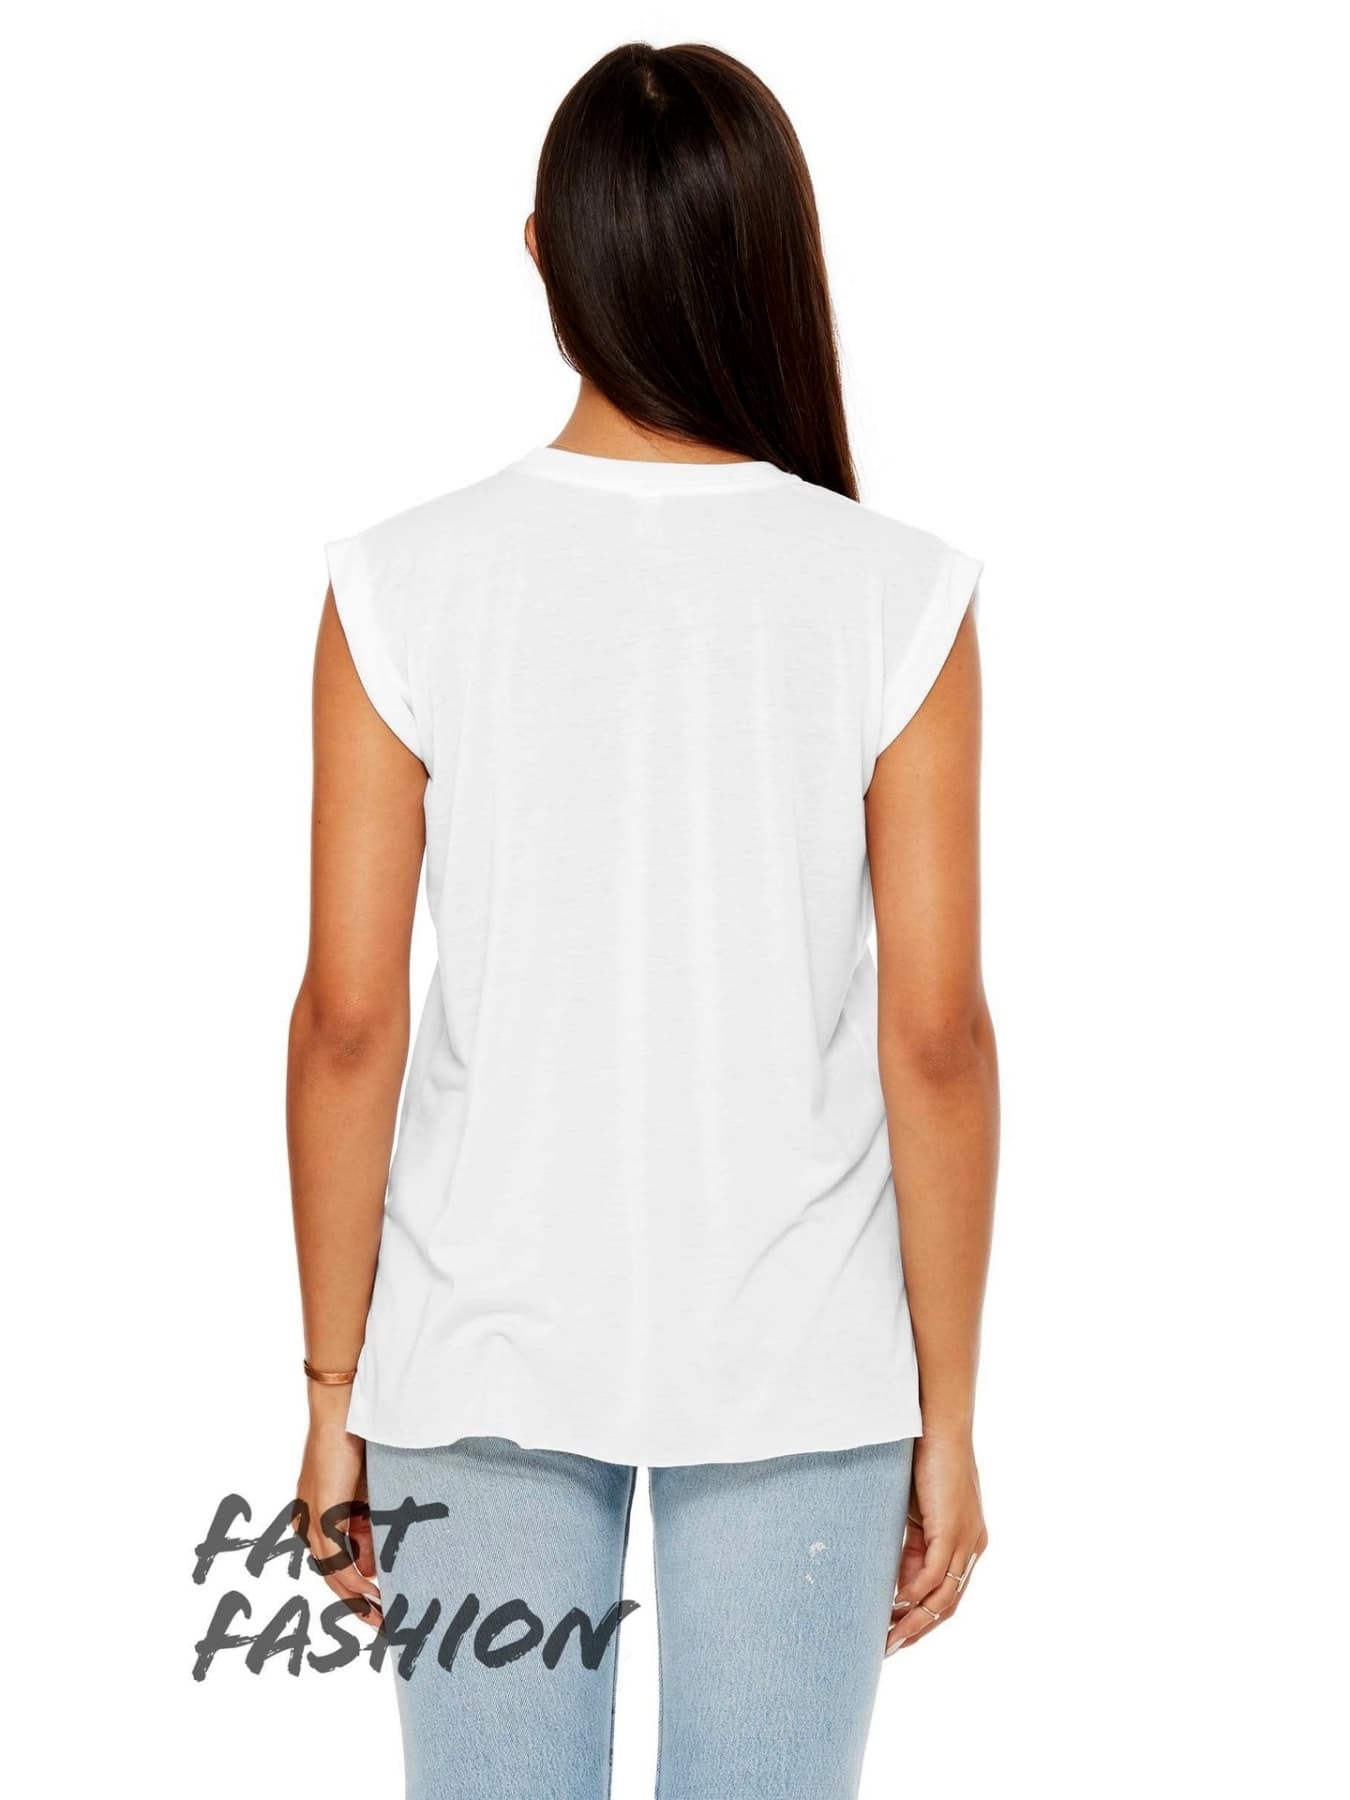 2bda526a1f837 Women s Flowy Muscle Tee with Rolled Cuff White Women s Flowy Muscle Tee  with Rolled ...